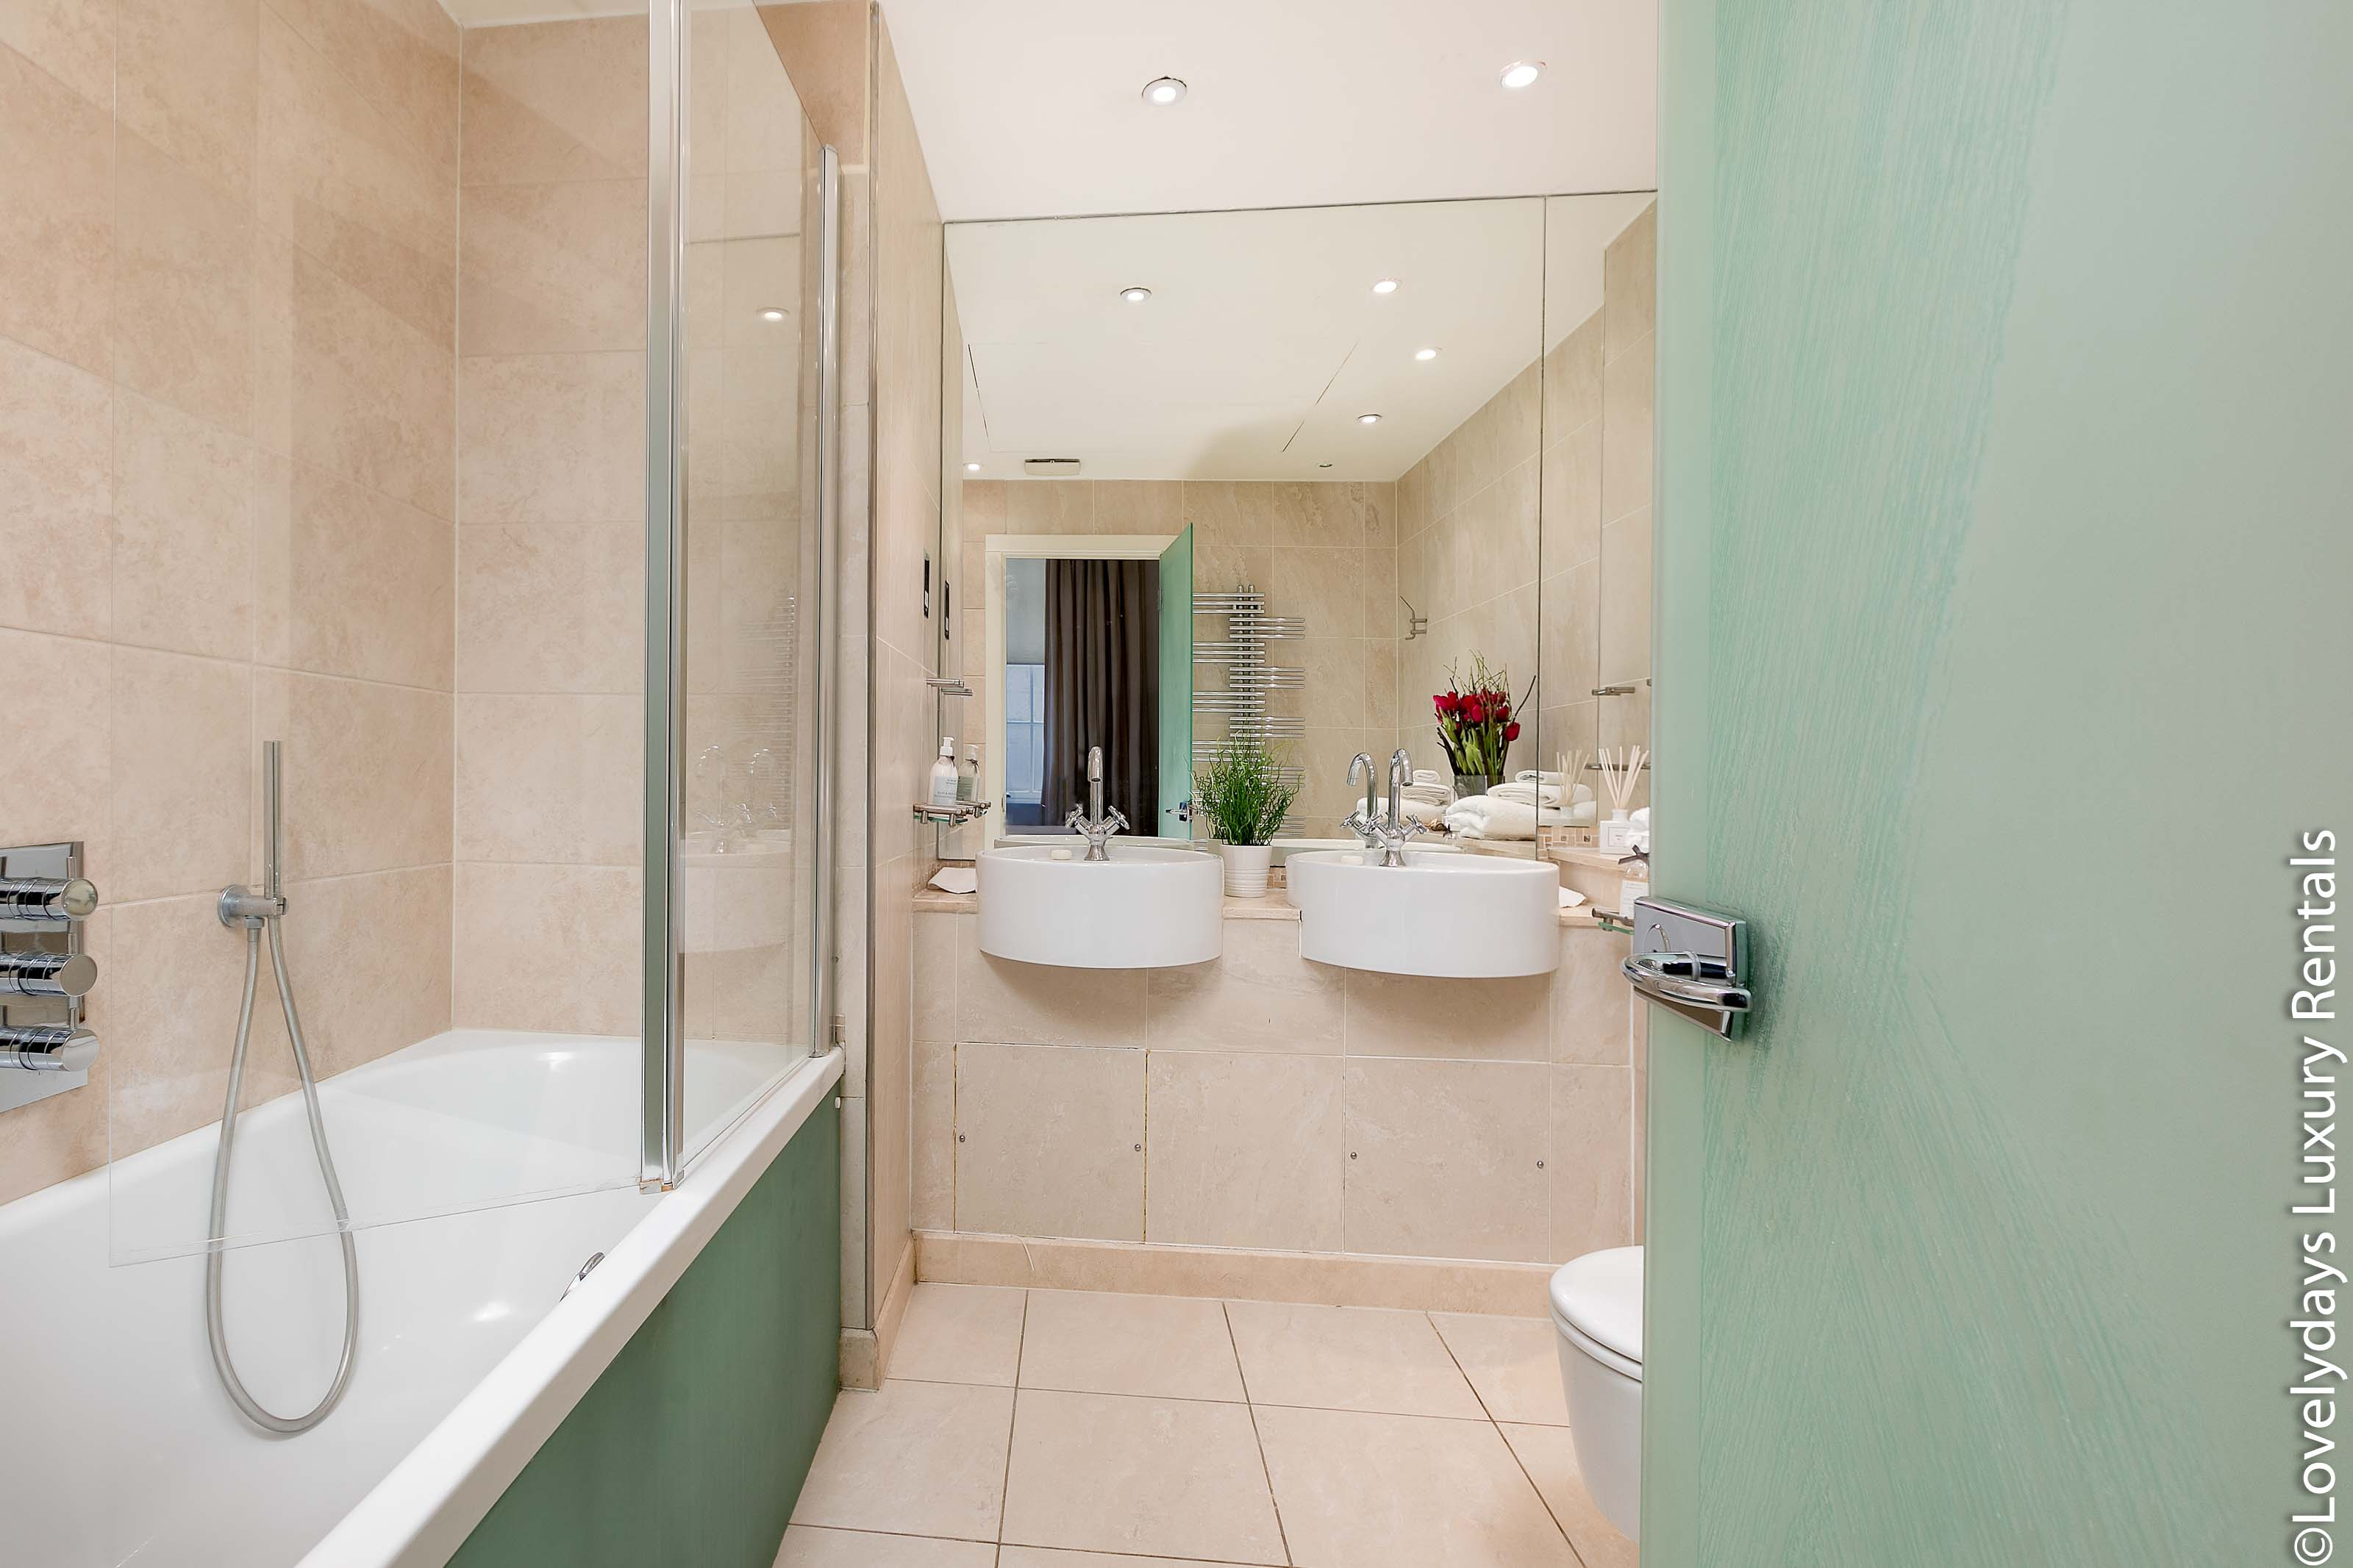 Lovelydays luxury service apartment rental - London - Knightsbridge - Hans Crescent - Partner - 2 bedrooms - 2 bathrooms - Beautiful bathtub - 00ac3717ad6f - Lovelydays